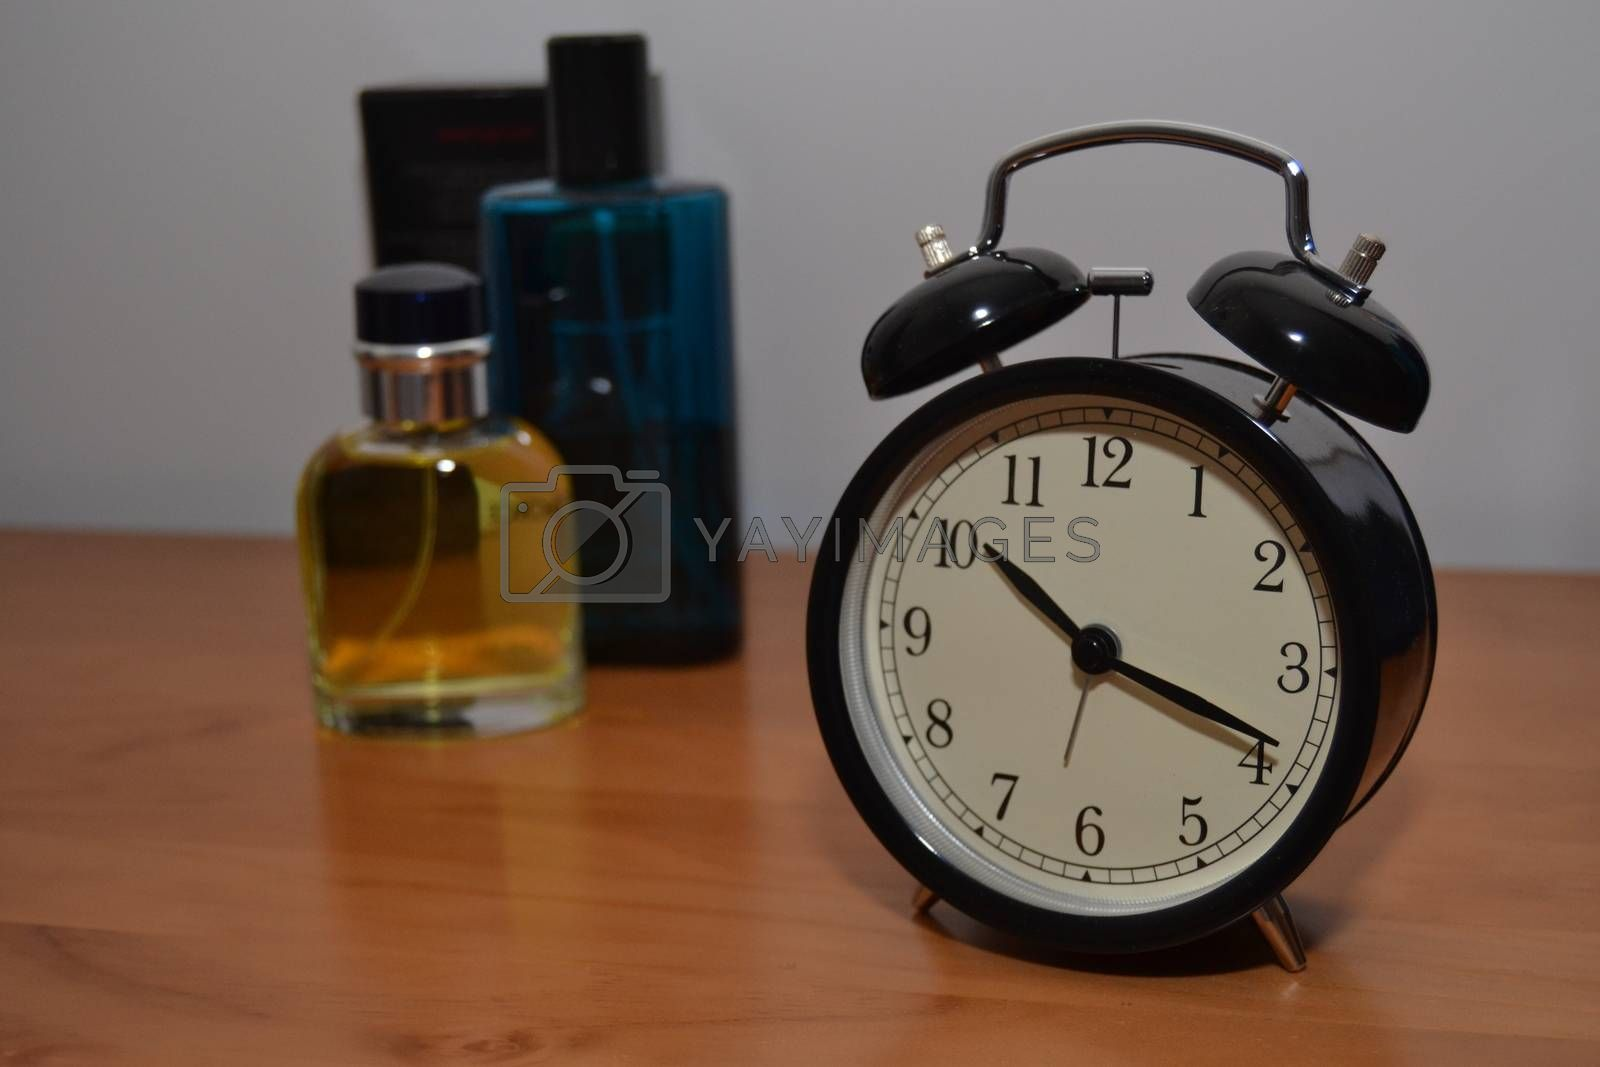 Glamorous scene with a perfume bottle background and an antique alarm clock black and white